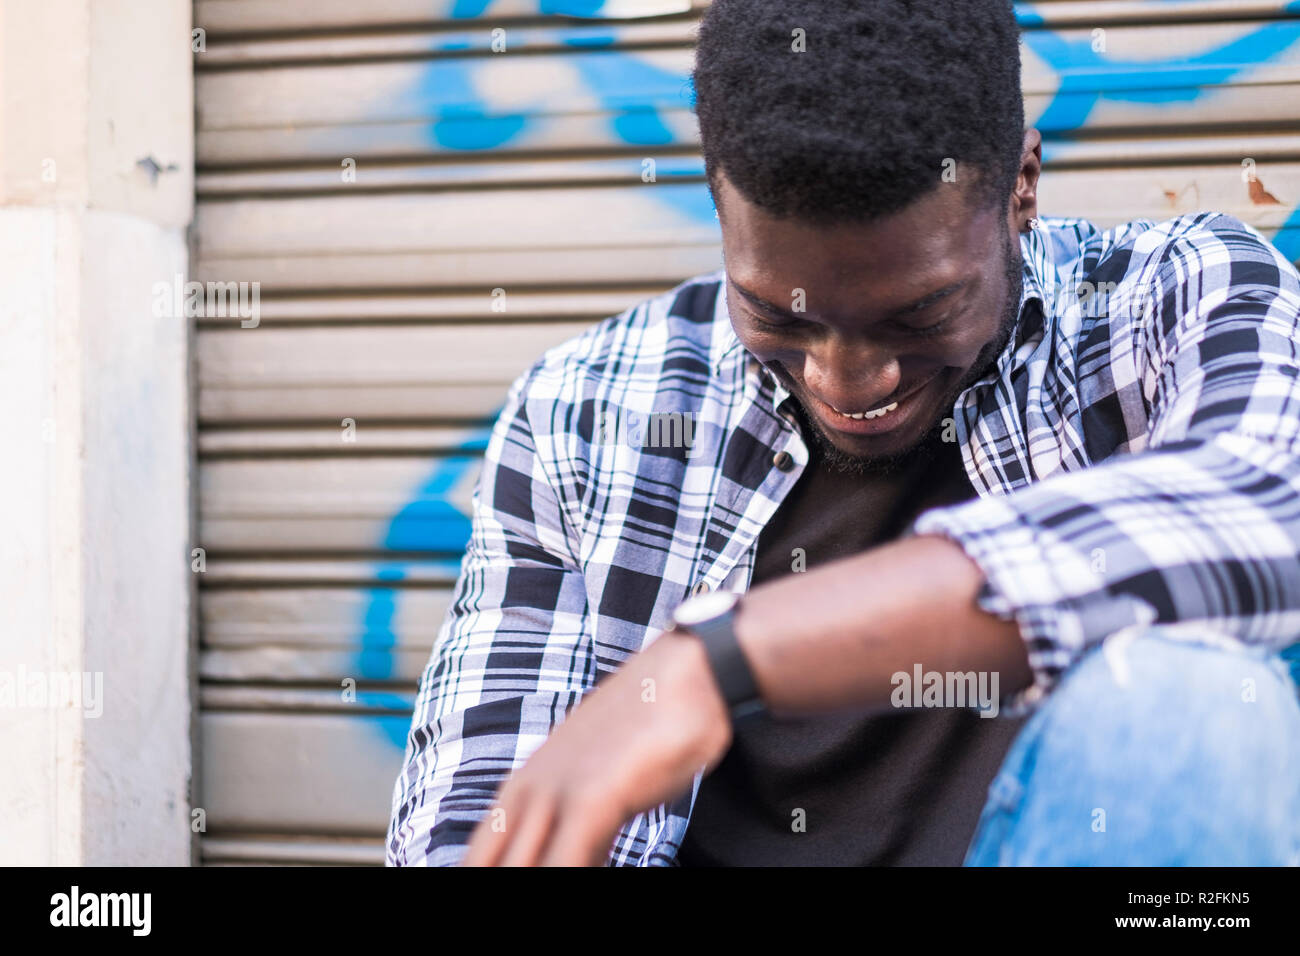 Handsome cheerful beautiful young black man african american smiling and having fun while sit and relax in the city with urban background. youthful concept for hipster style teenager boy - Stock Image